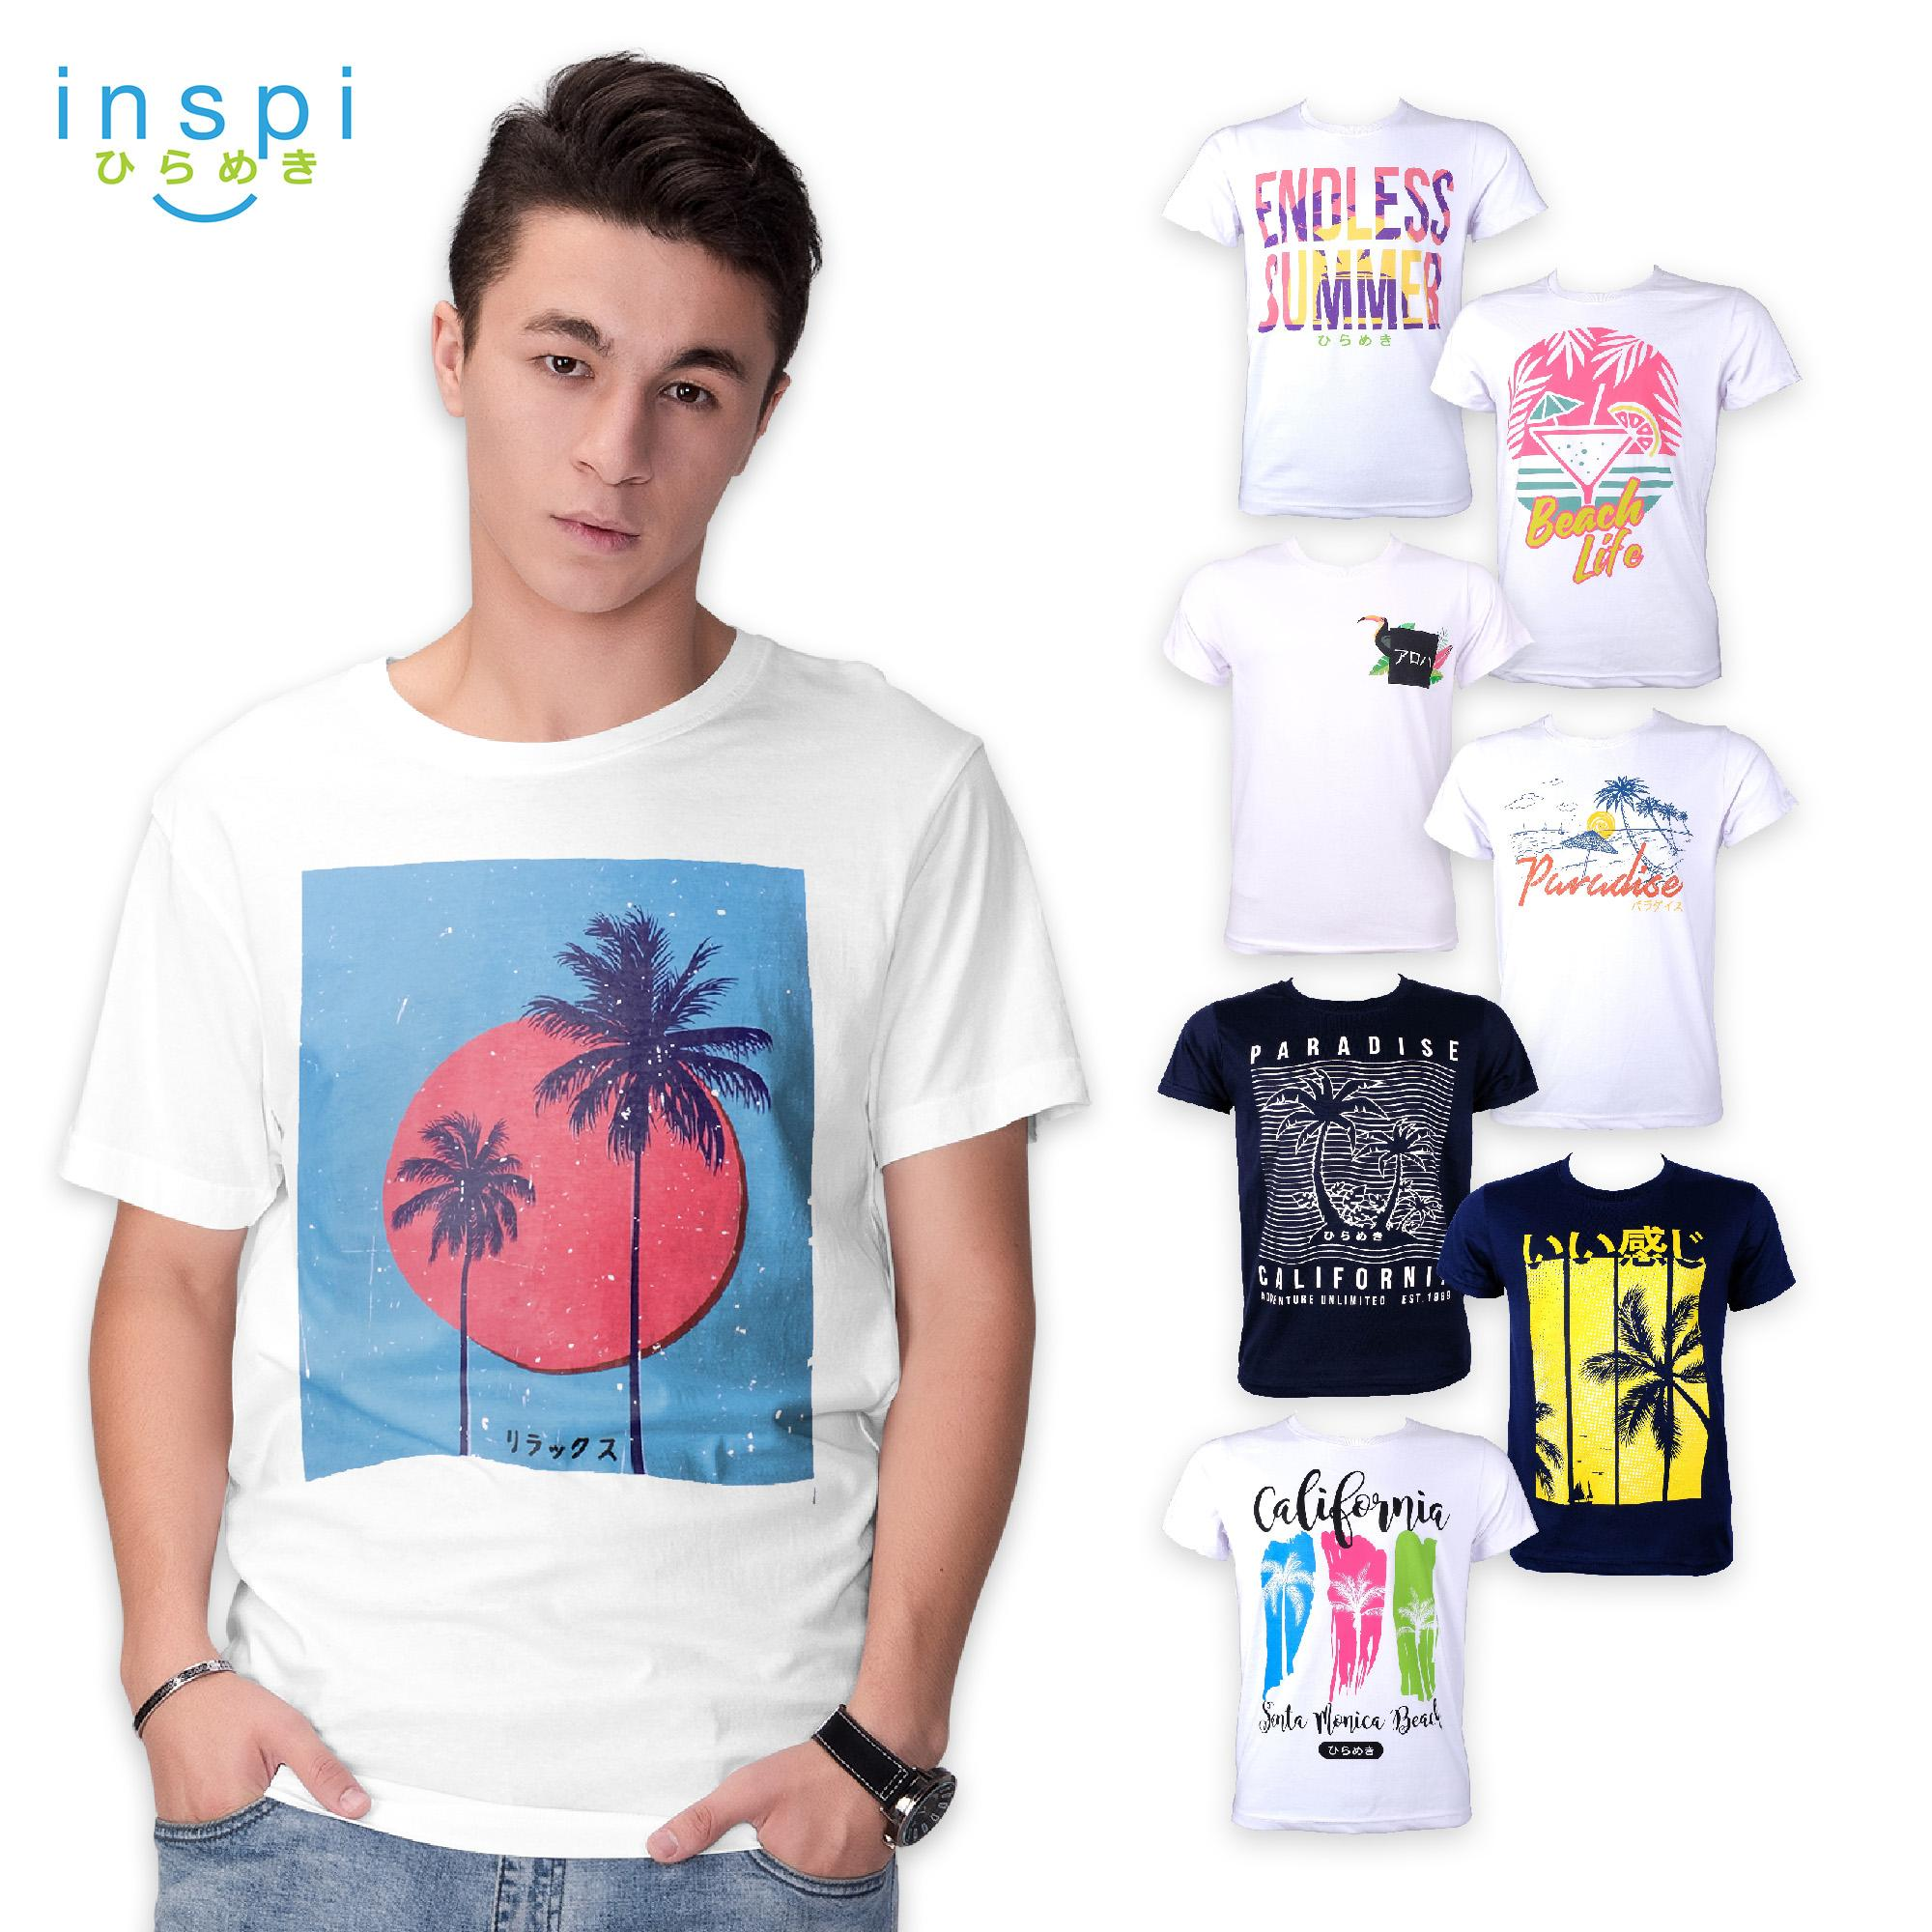 534fe6f9 INSPI Tees Summer Collection tshirt printed graphic tee Mens t shirt shirts  for men tshirts sale